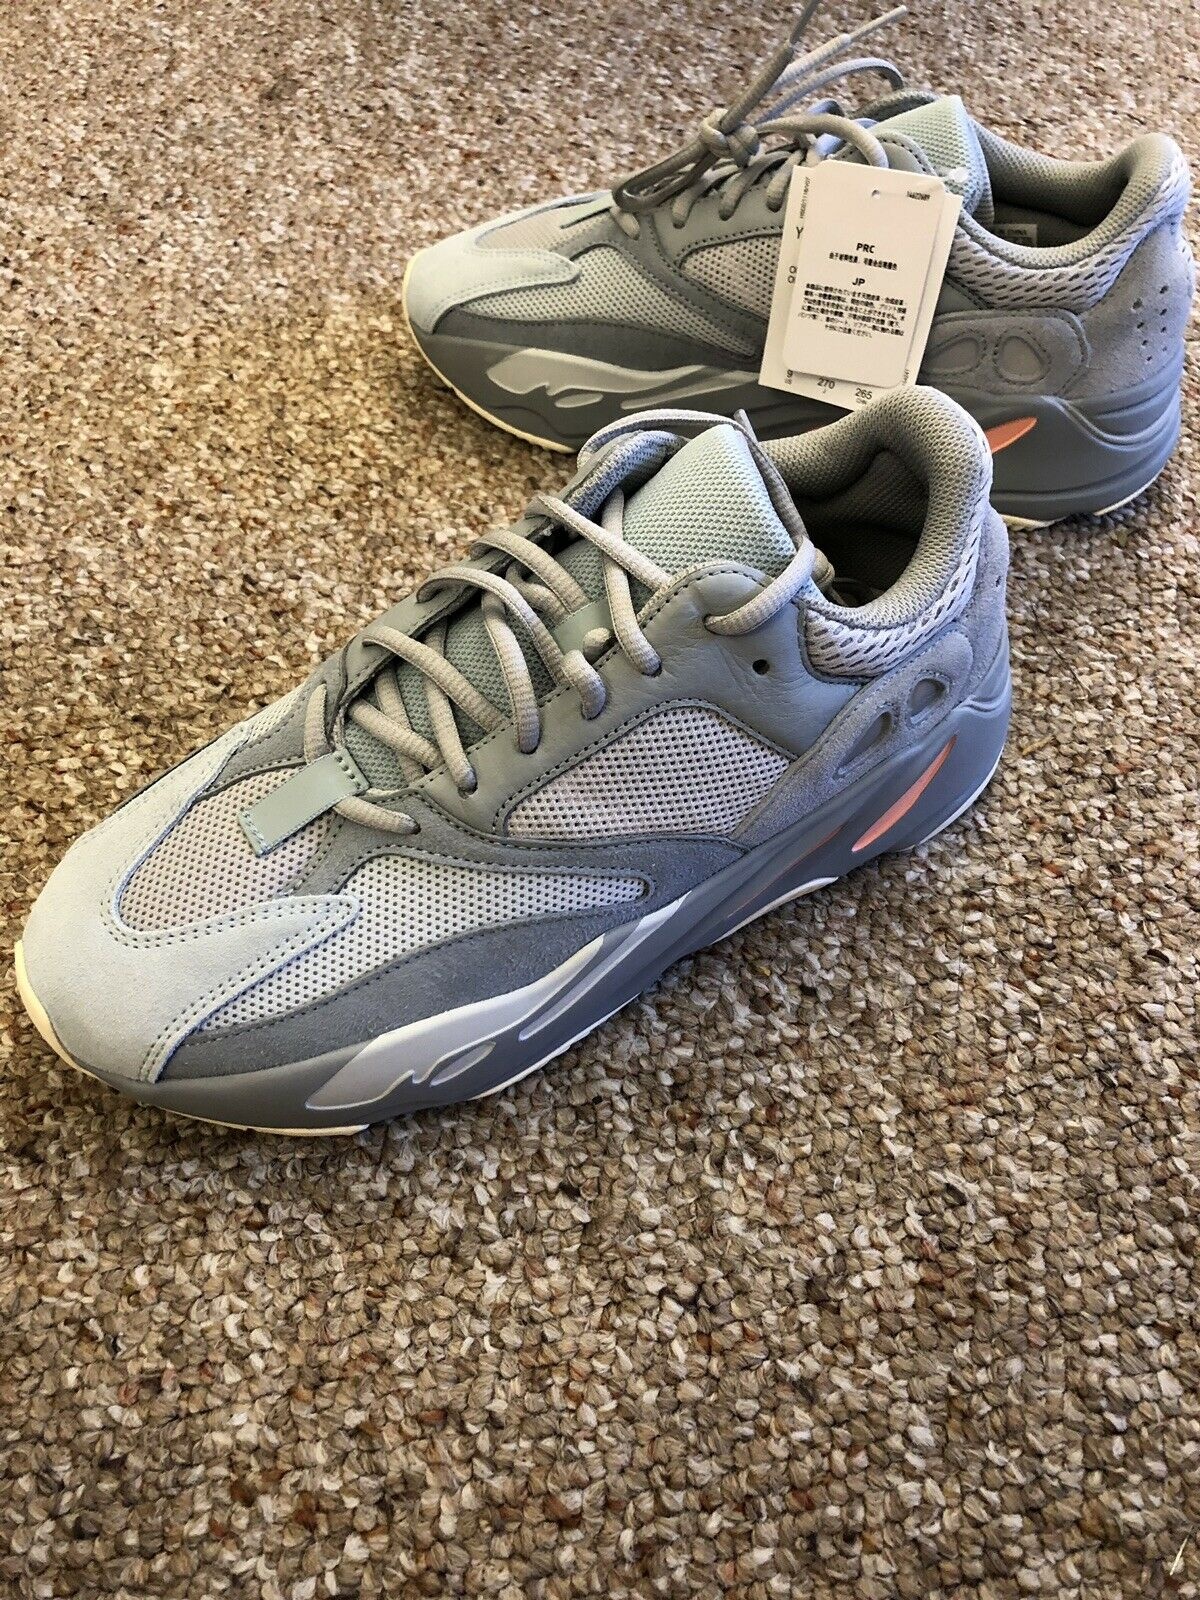 Adidas Yeezy Boost 700 Inertia US Men's Size 9 100% Authentic